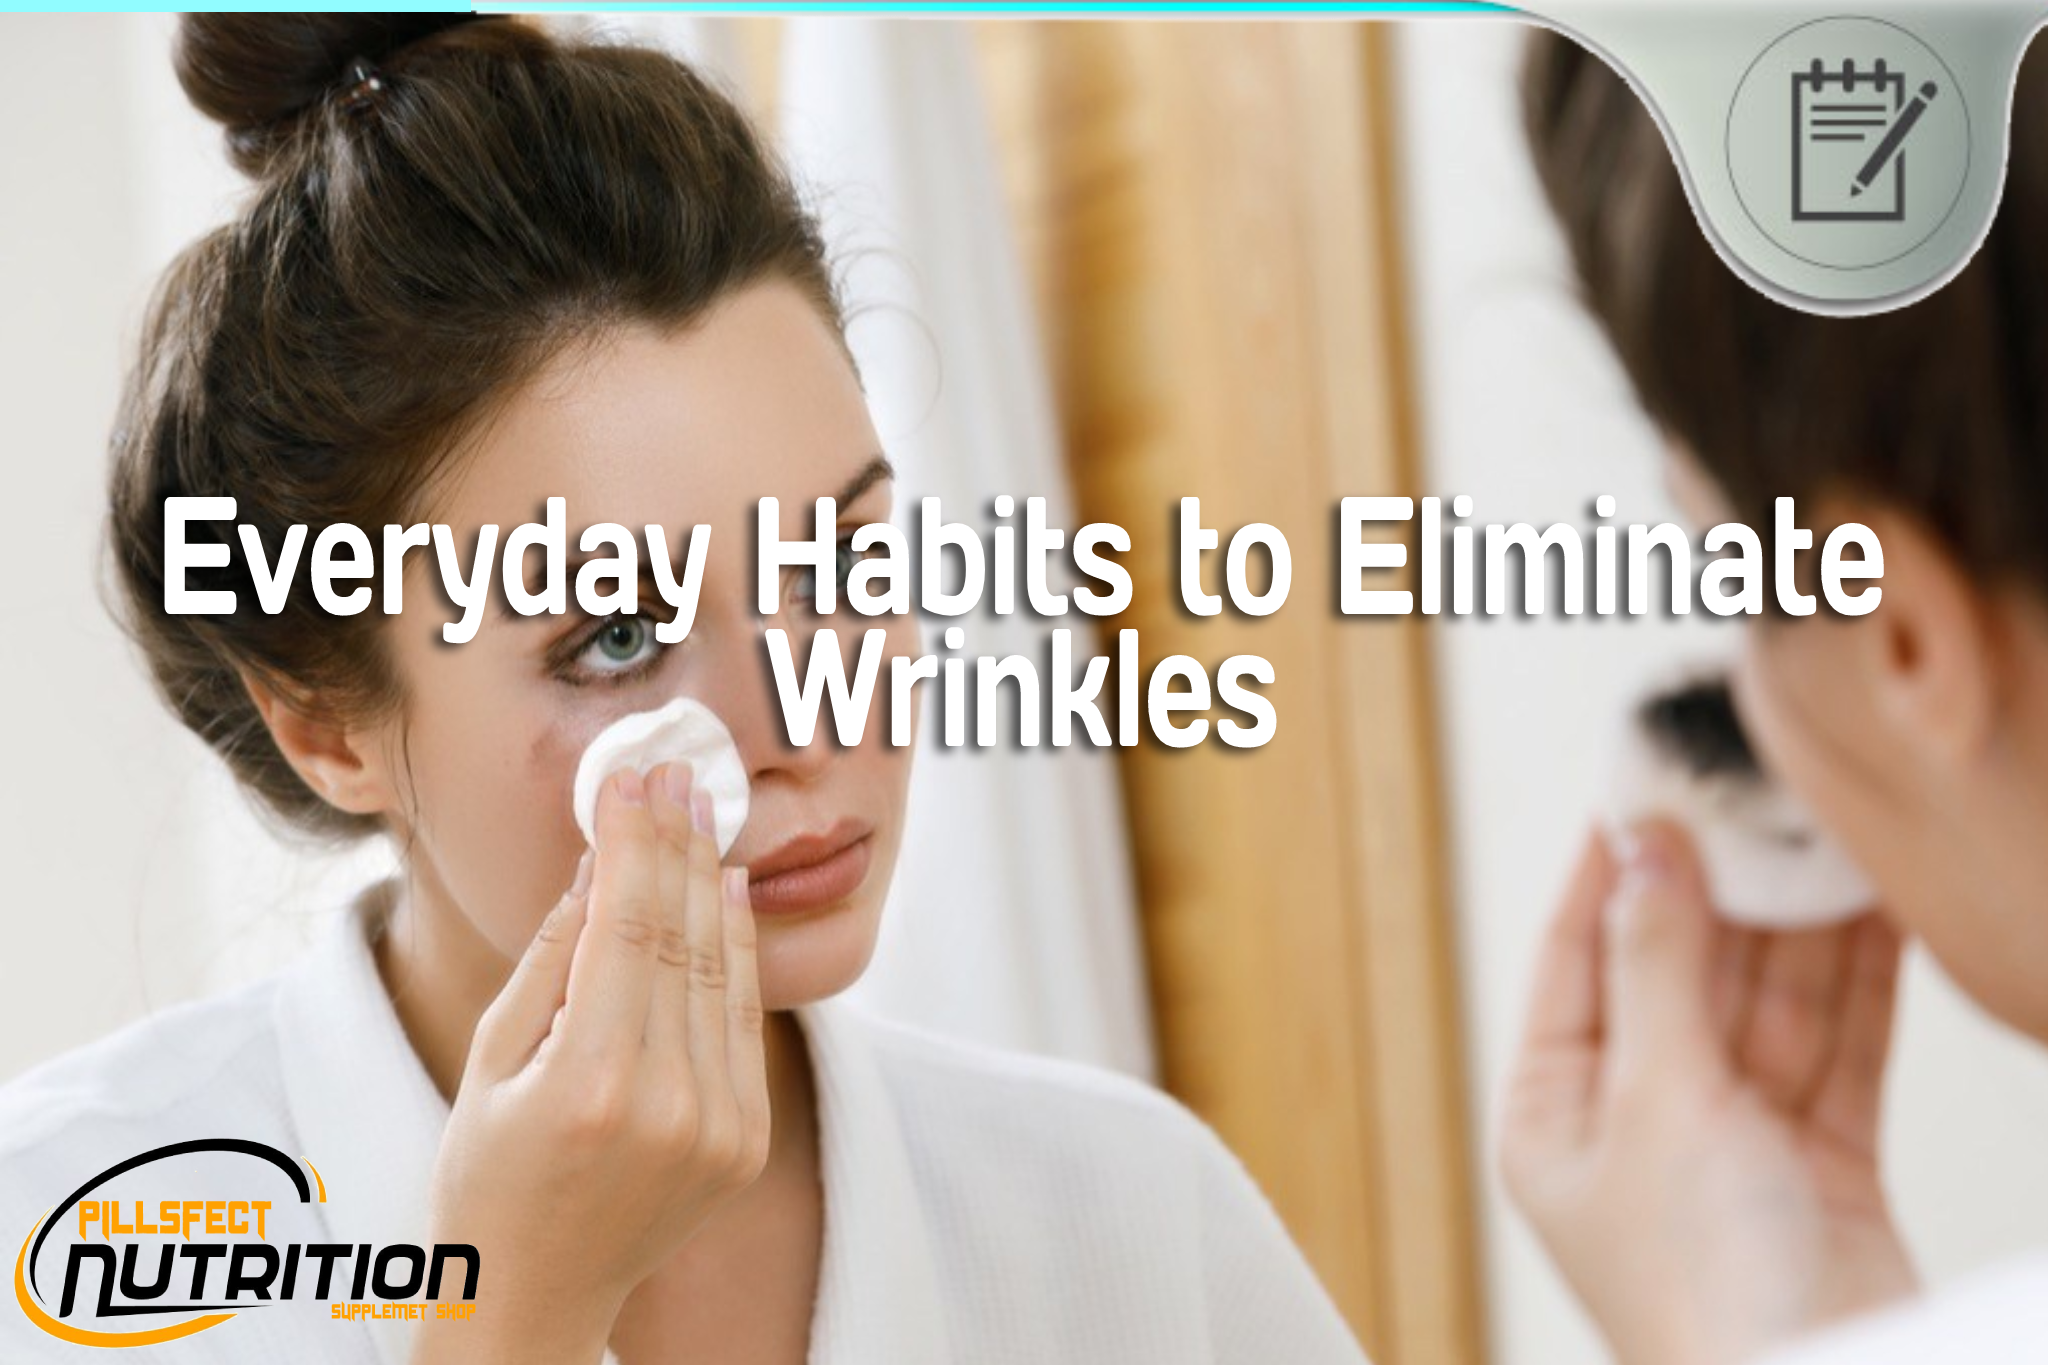 Everyday Habits to Eliminate Wrinkles - Can I Get Rid of Wrinkles Naturally?